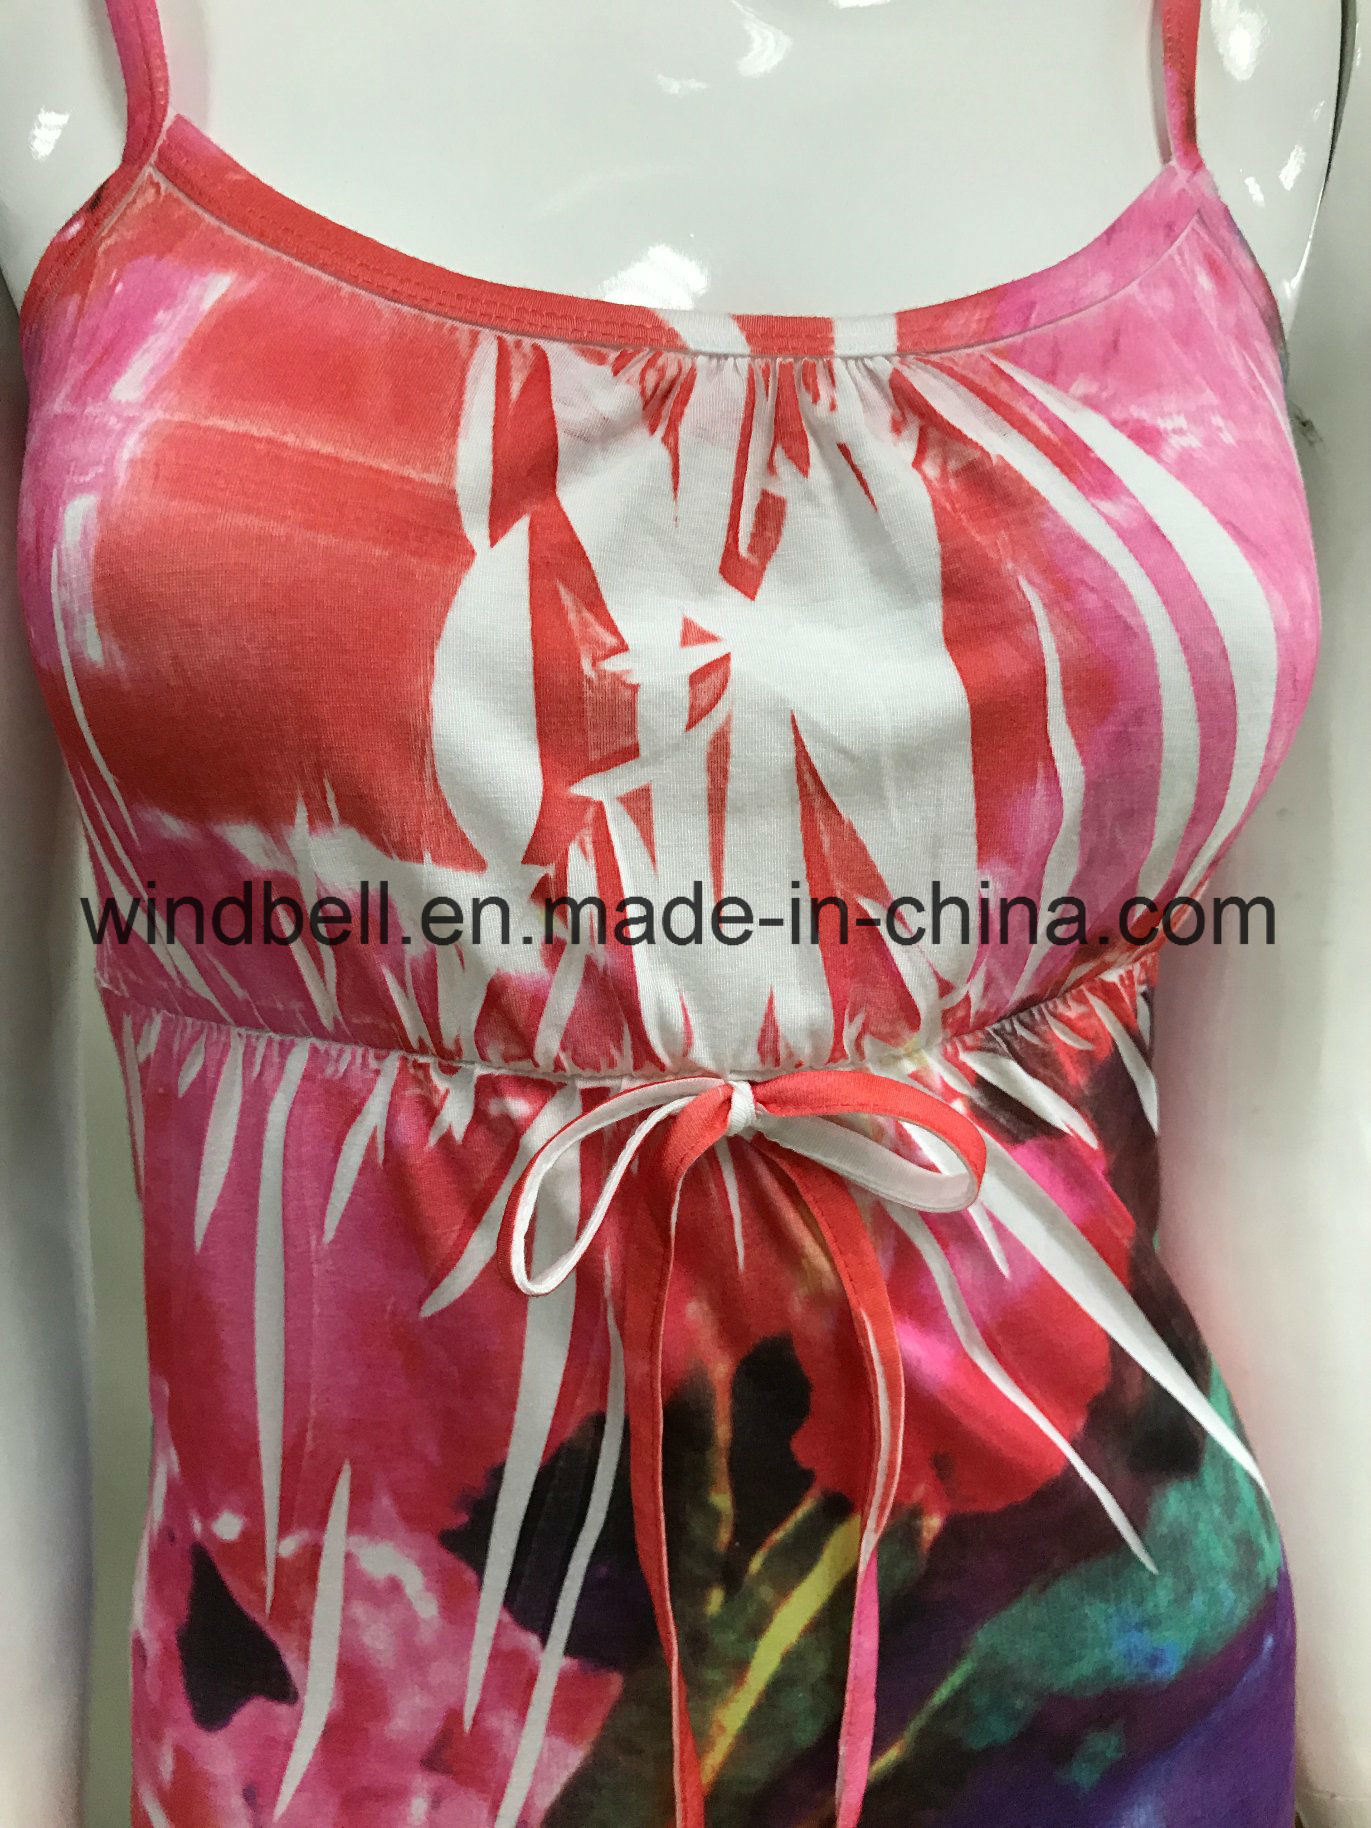 Womens Slip Dress with Garment Crumple and Sublimation Printing